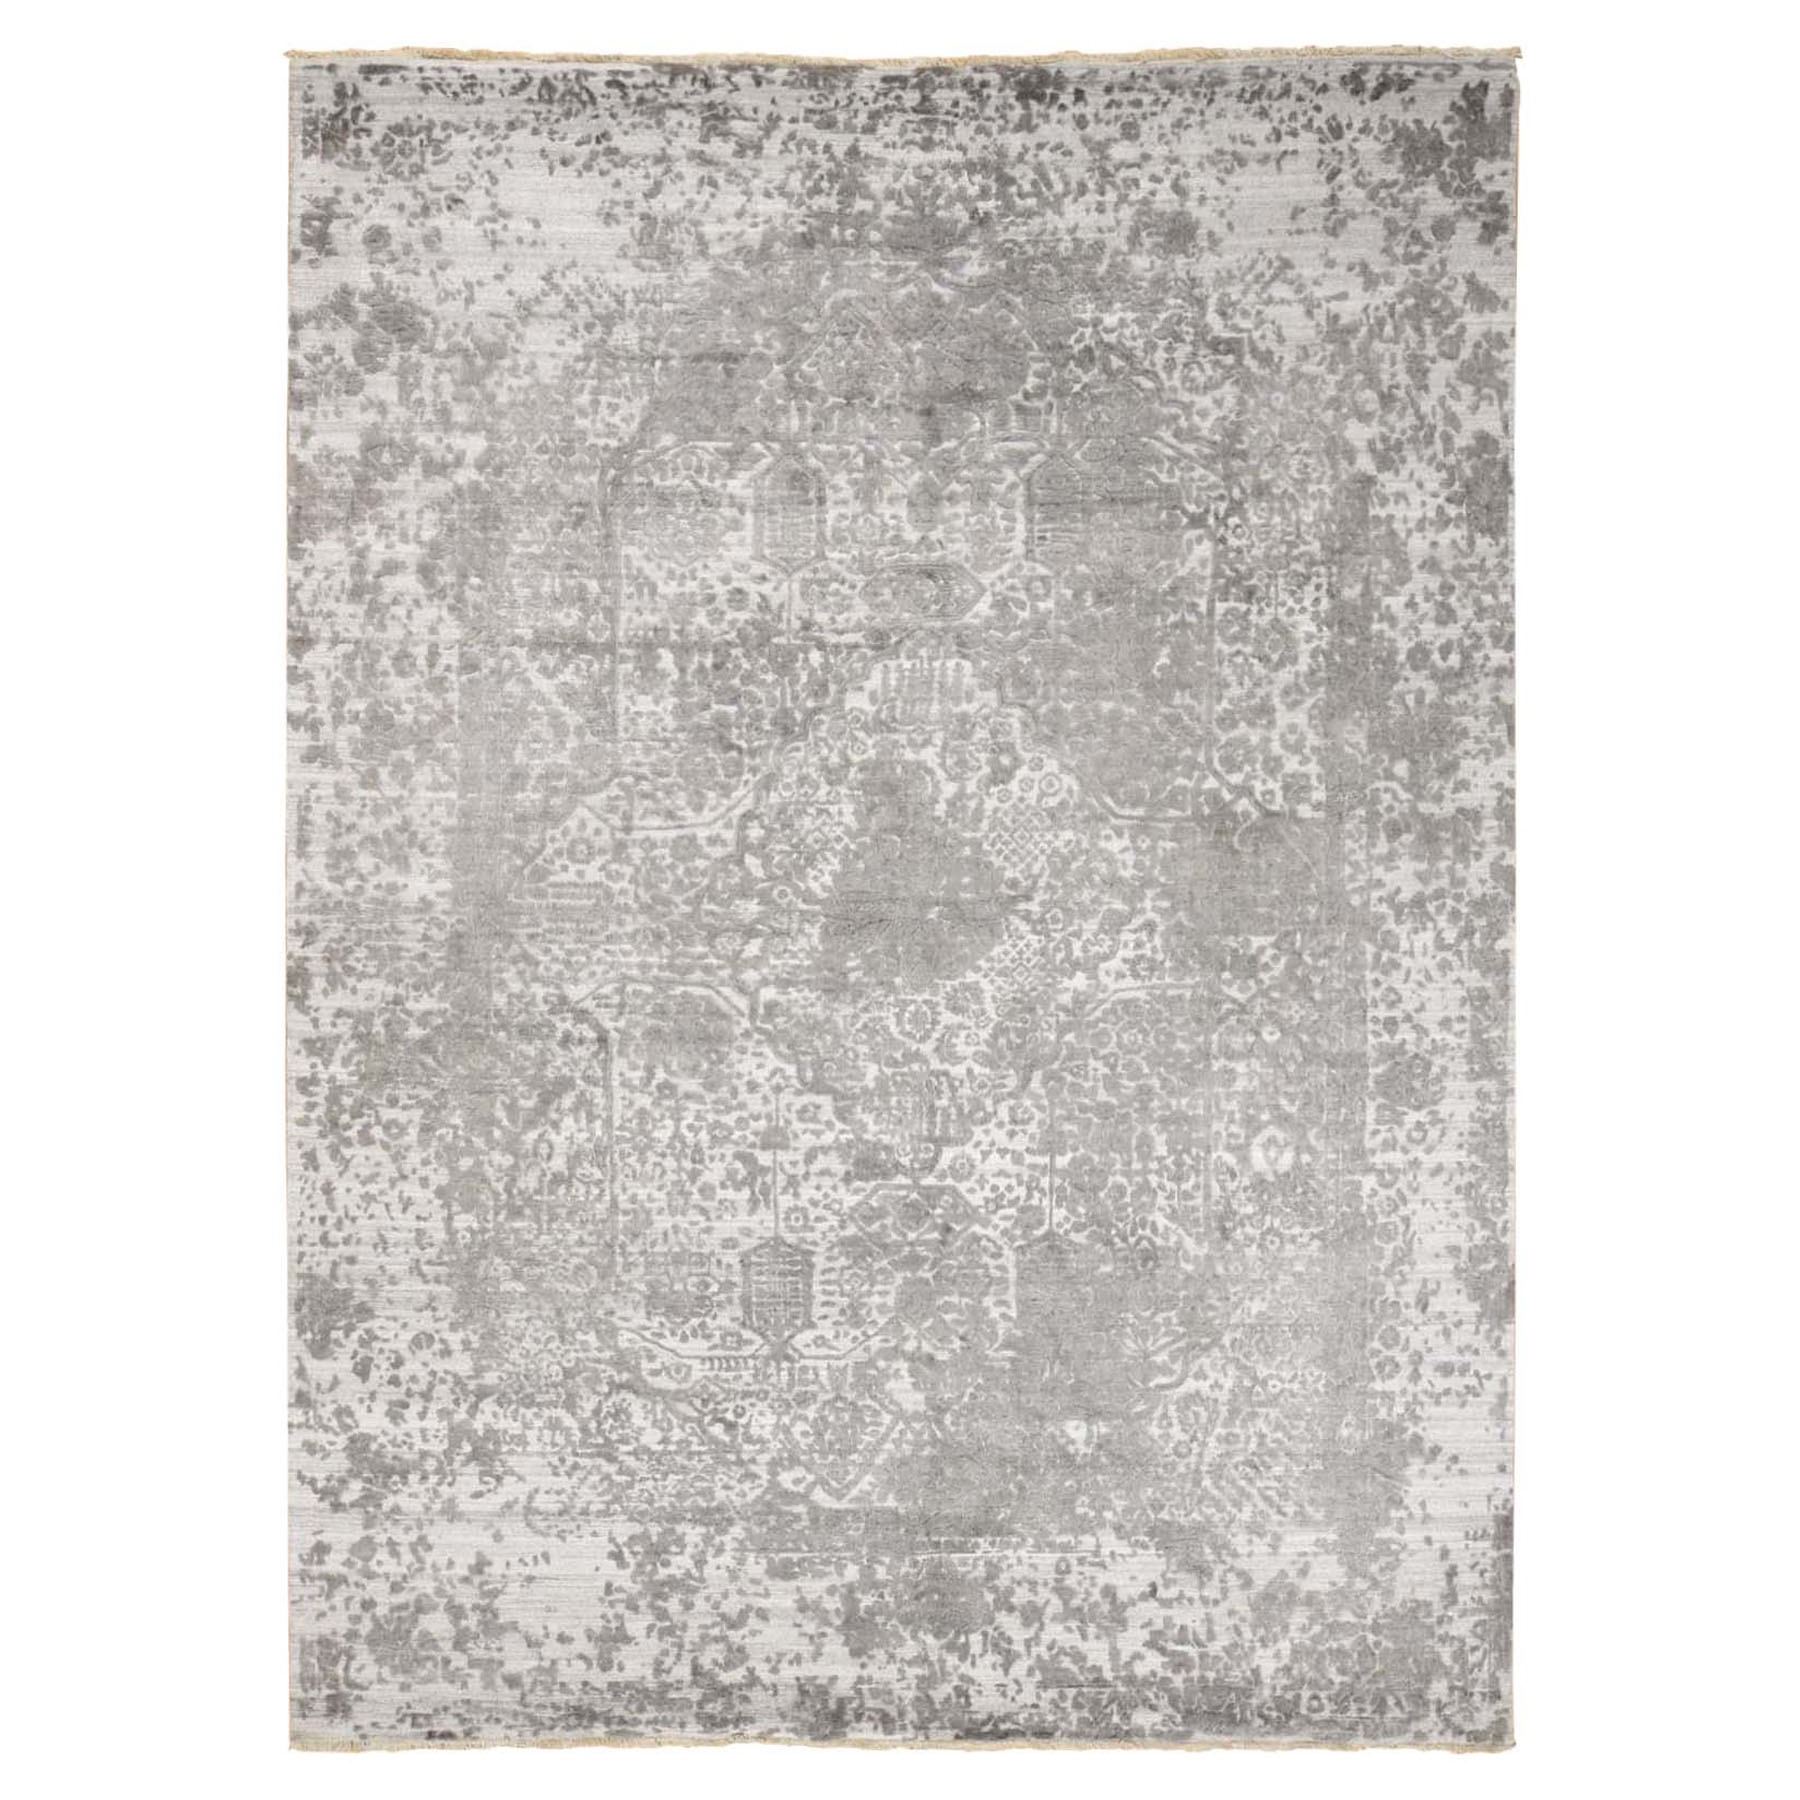 10'x14' Hand Woven Wool and Pure Silk Broken Persian Design Oriental Rug